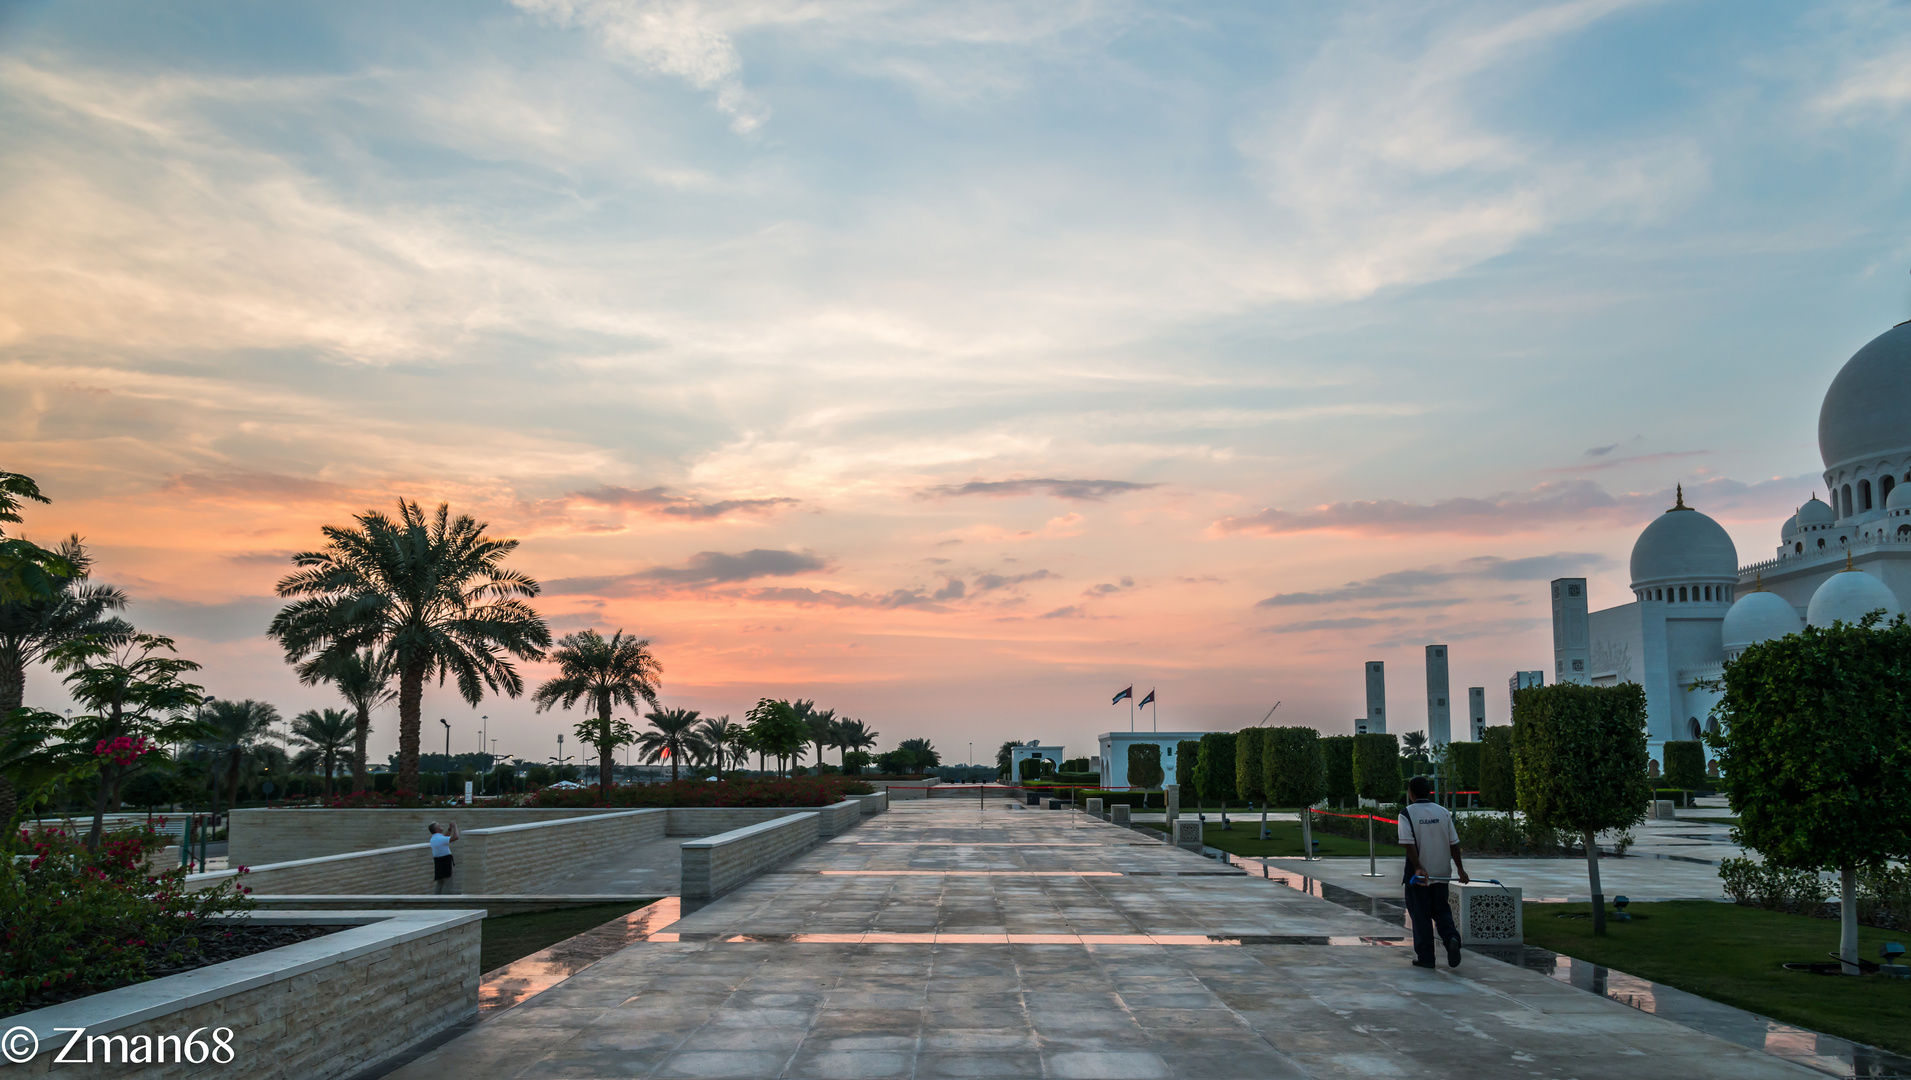 Sunset Overlooking the Palms of Shk Zayed Mosque 02